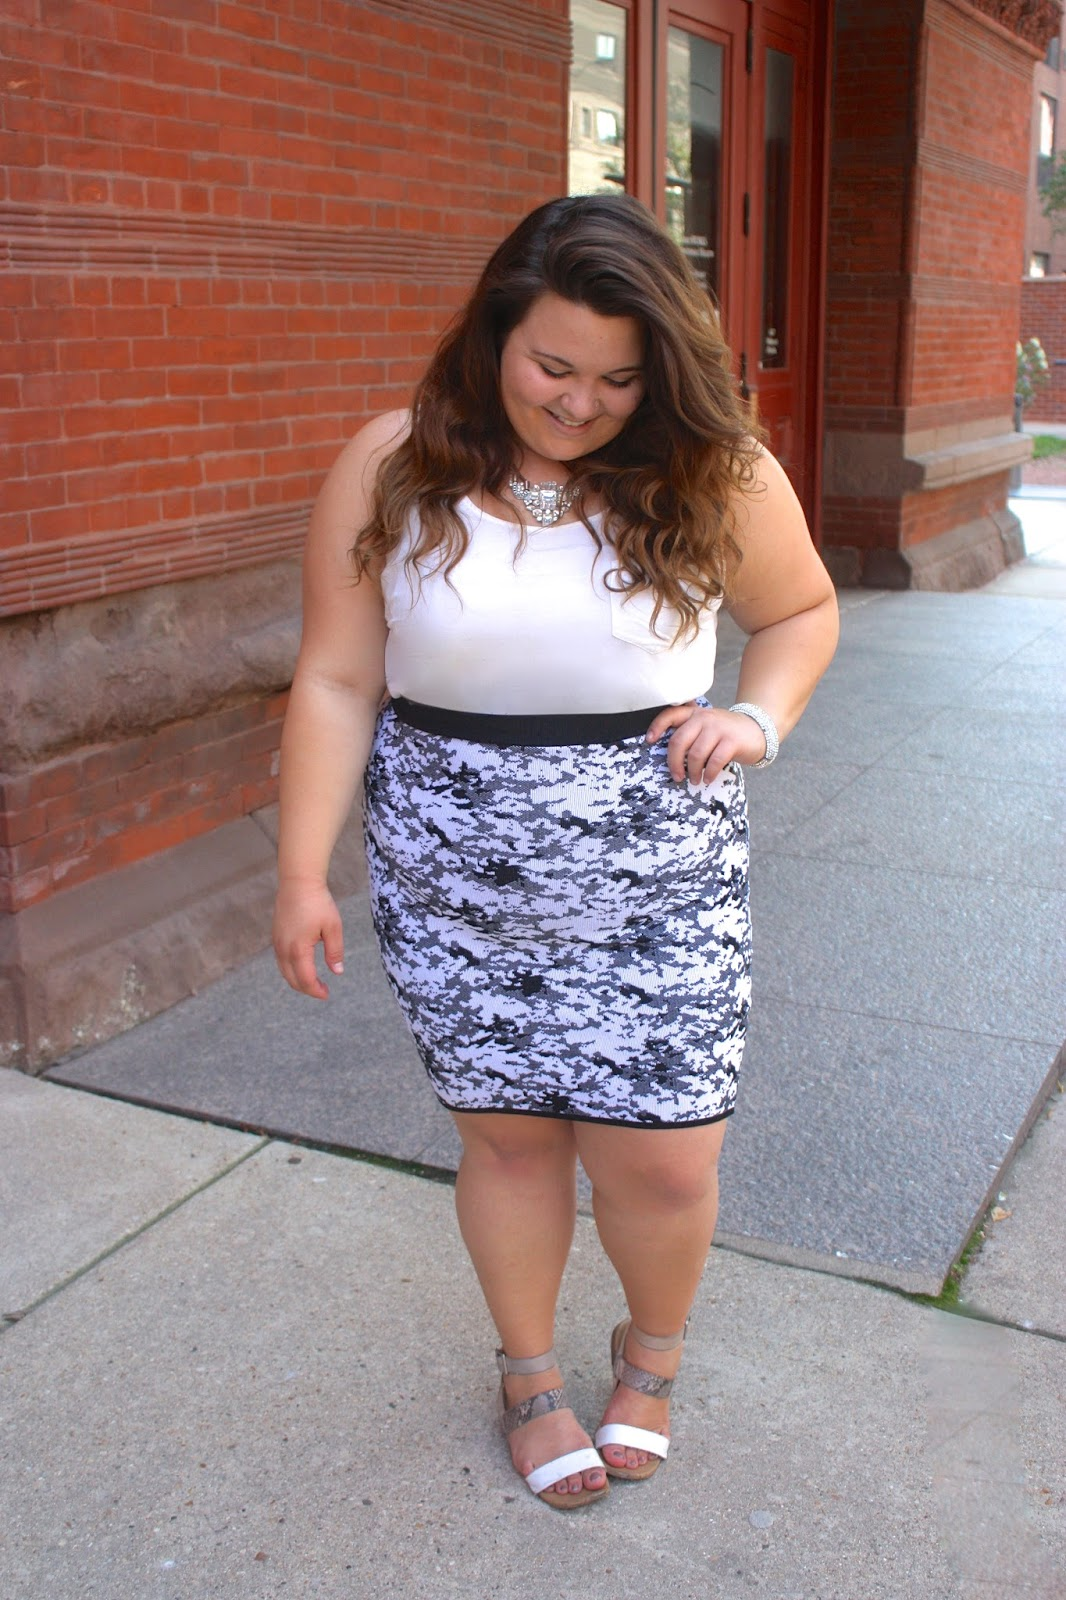 natalie in the city, natalie craig, chicago, camoflauge, monochromatic ensembles, ootd, statement jewlery, mixing patterns, forever 21, midi skirt, bandage skirt, plus size fashion, fashion blogger, ps fashion, fatshion